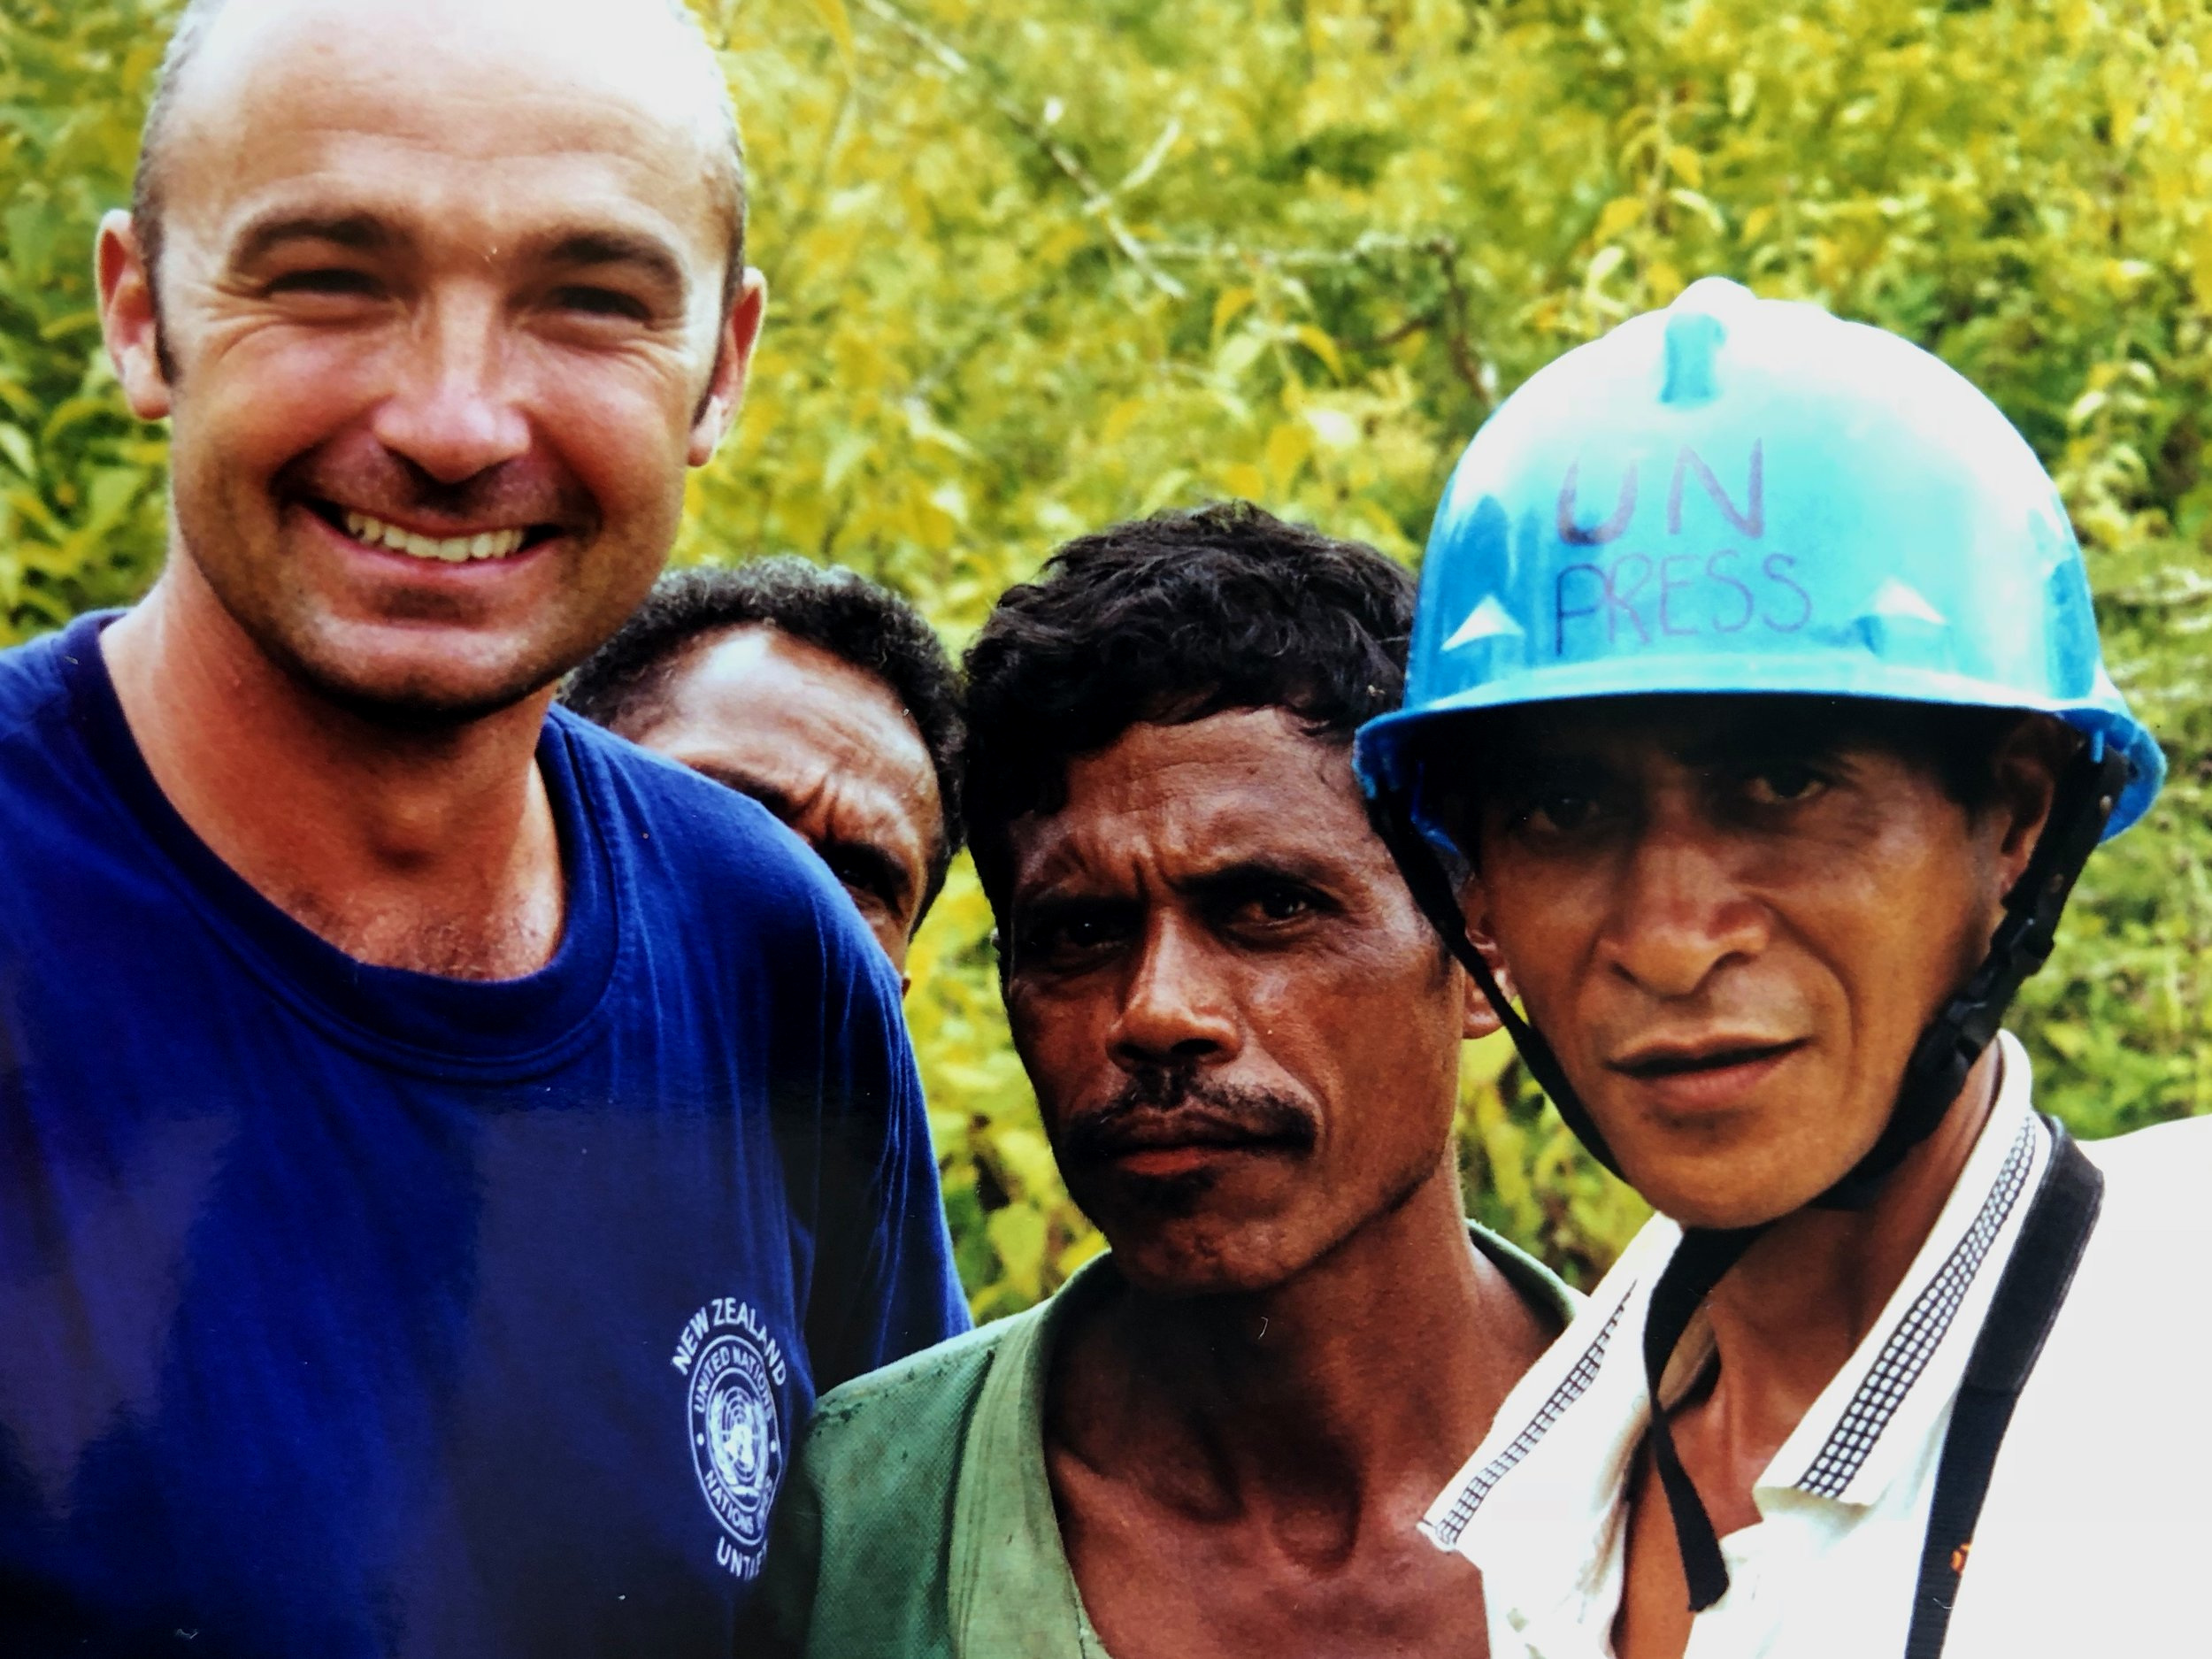 Hilarious tales from East Timor to prison cells in Africa